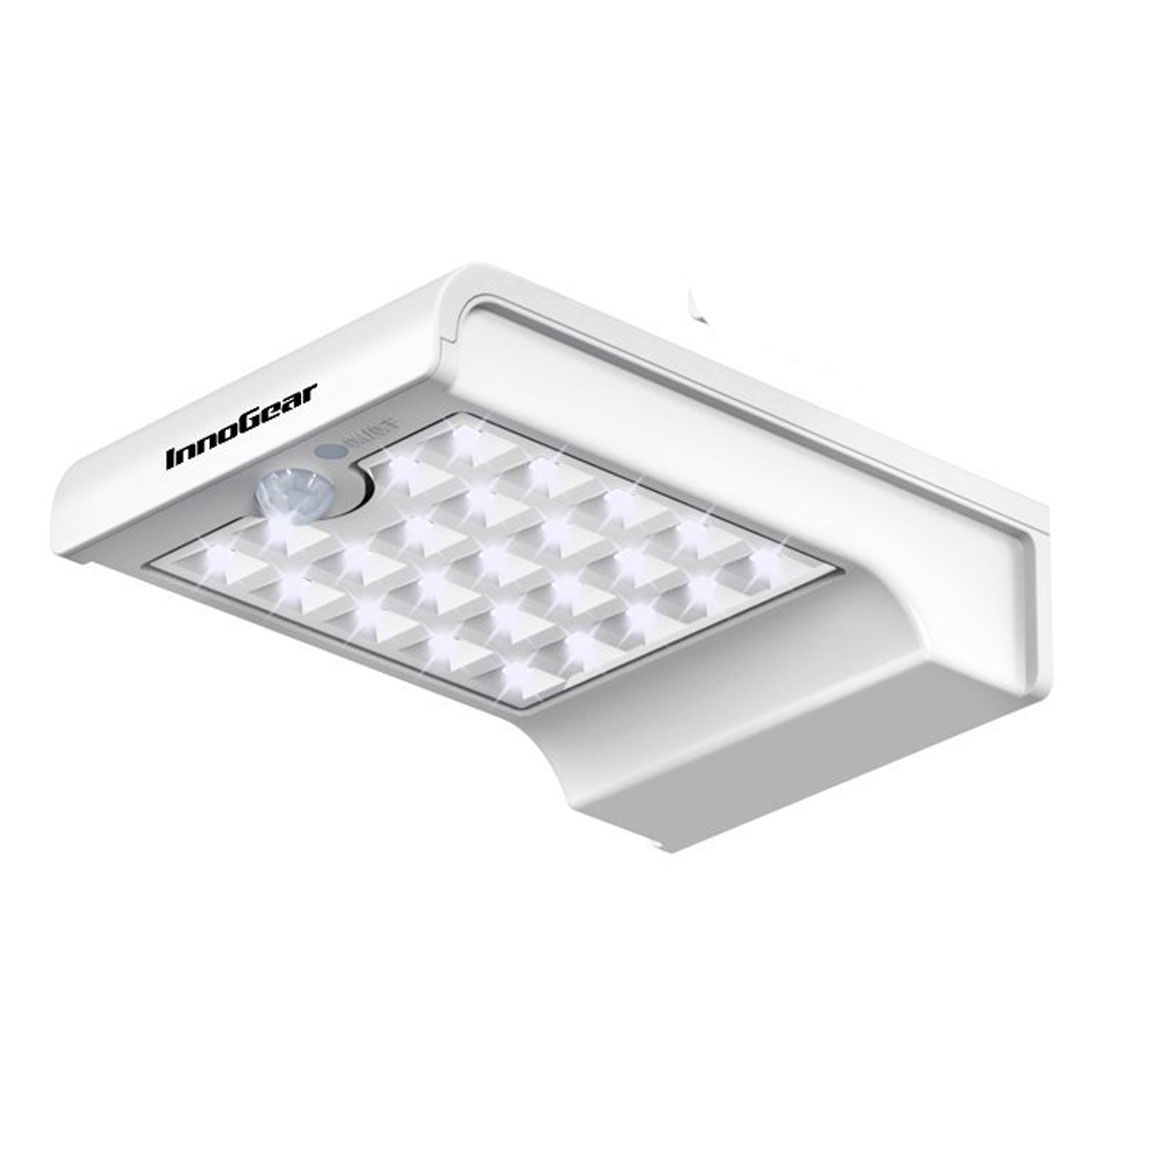 Lampara led solar de 24 led con sensor movimiento 150 for Lampara solar led